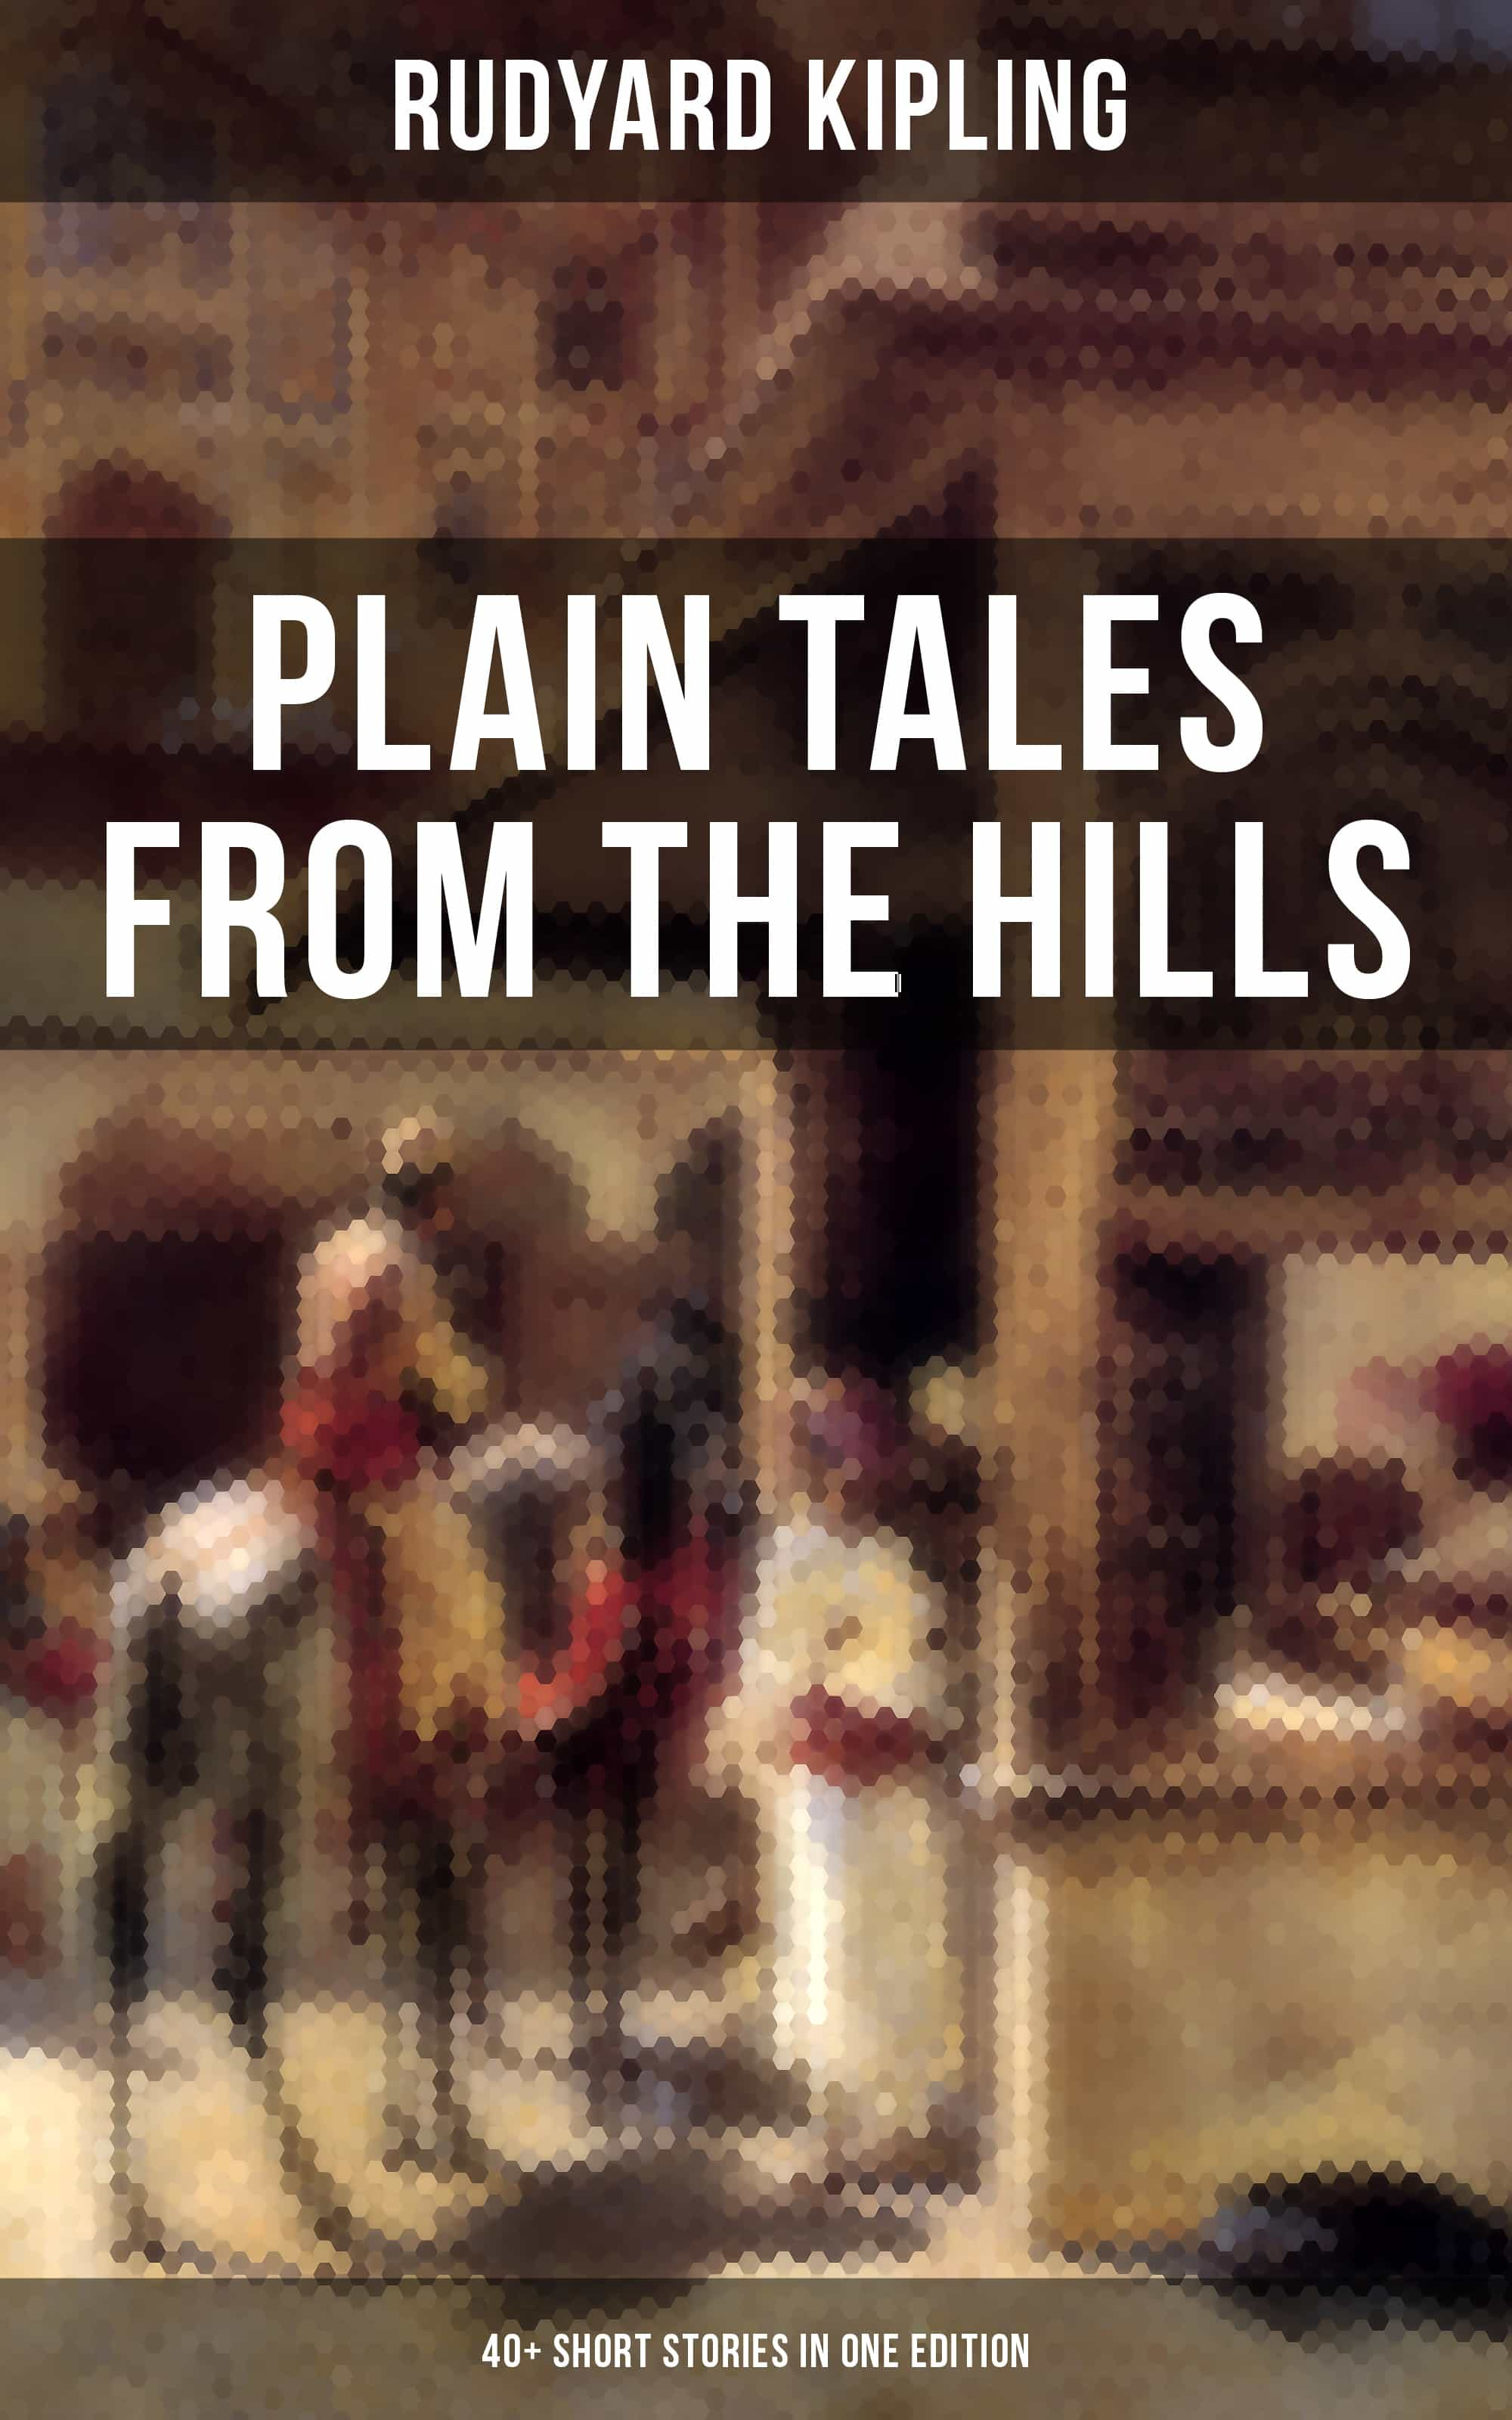 c1c5b5f7d PLAIN TALES FROM THE HILLS (40+ SHORT STORIES IN ONE EDITION) EBOOK ...